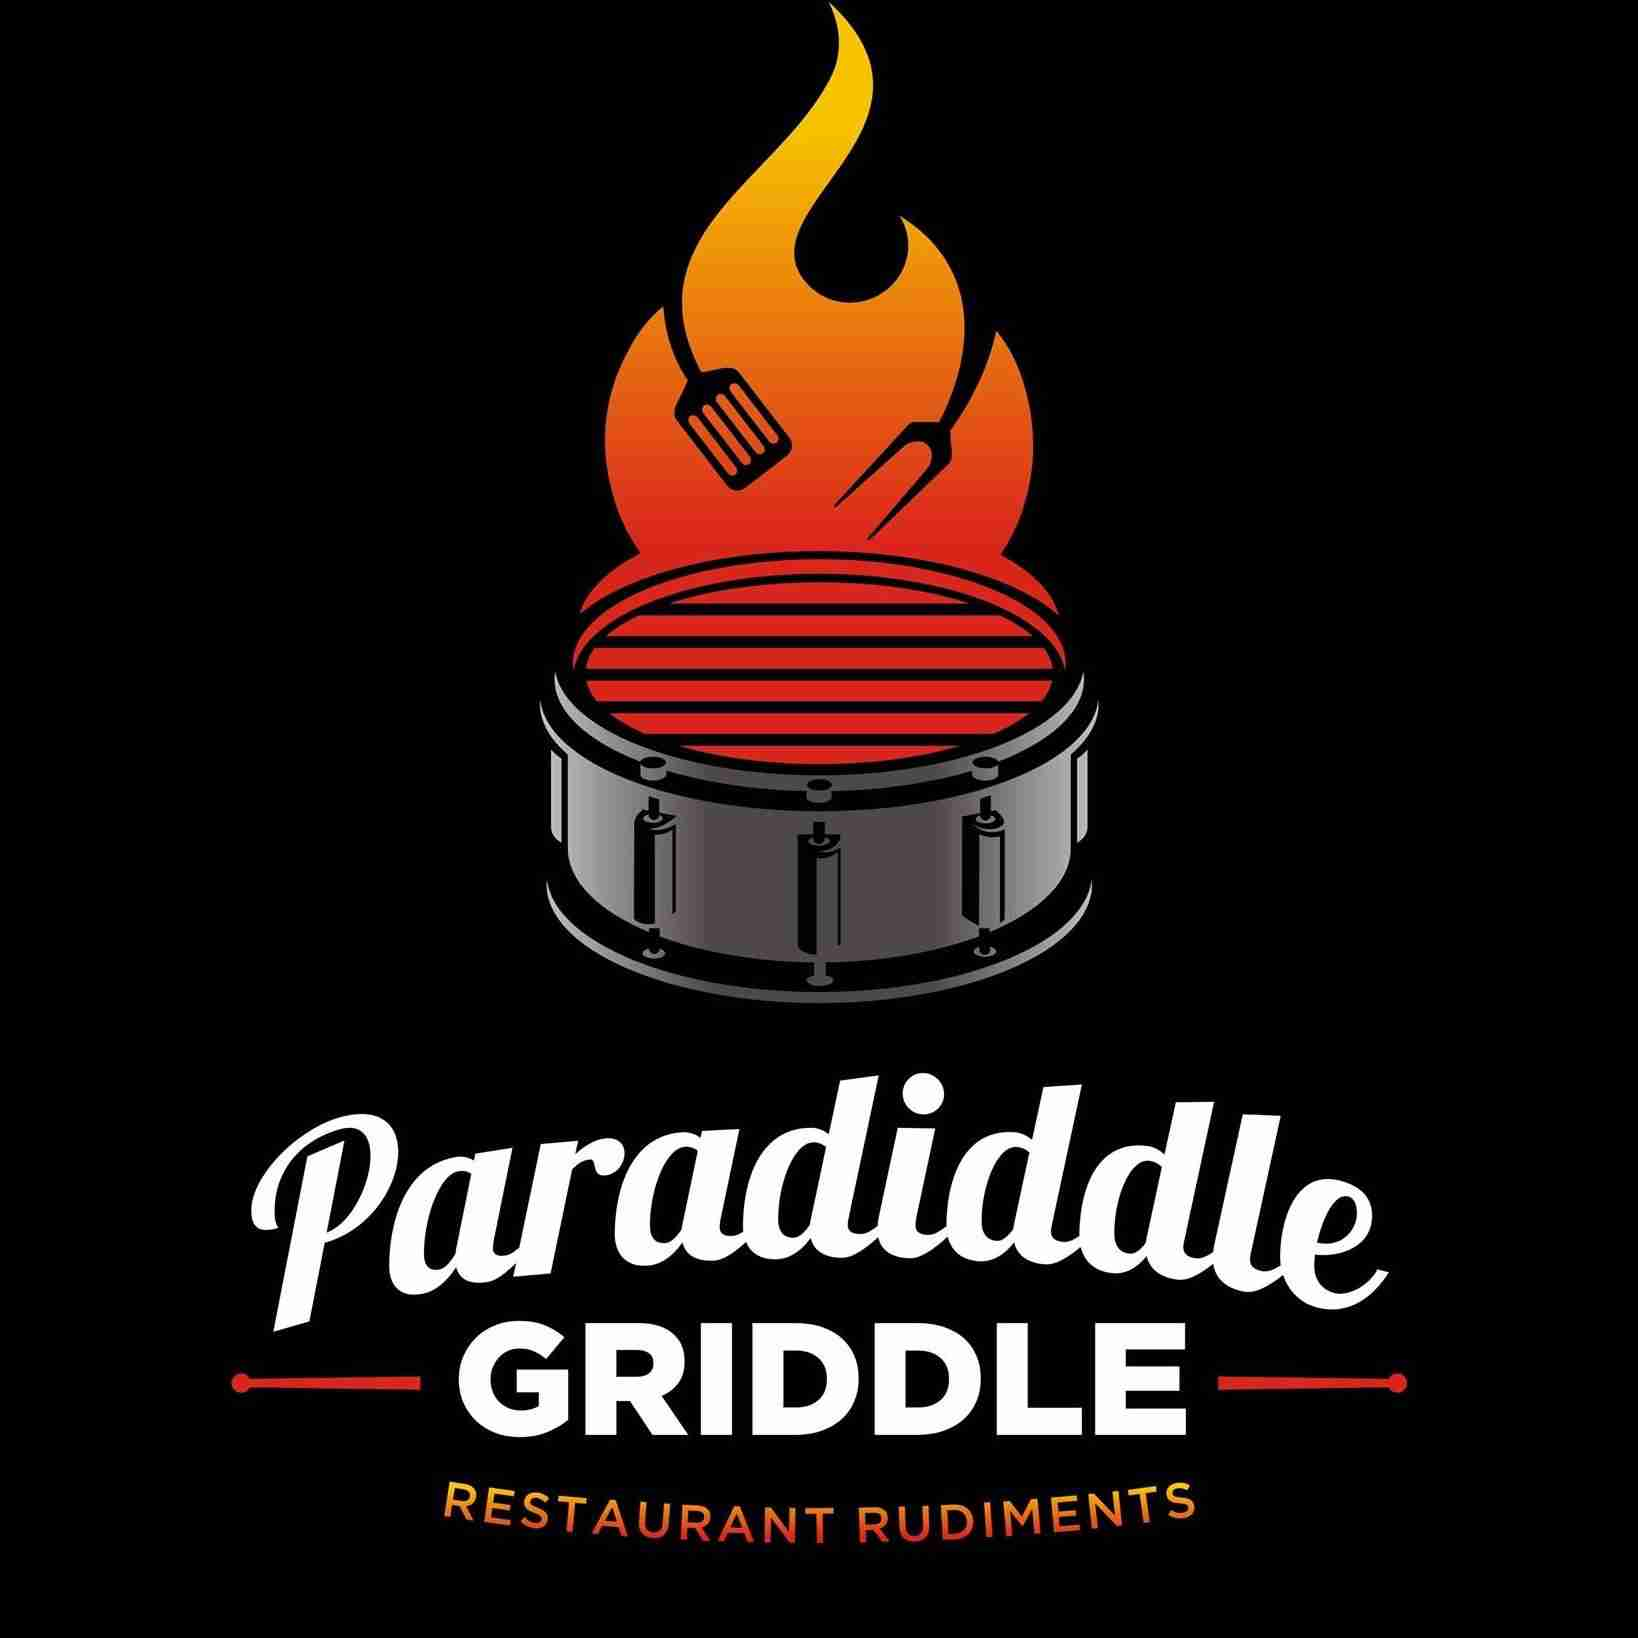 Hansel 'n Griddle Red Bank ParadiddleGriddle nj